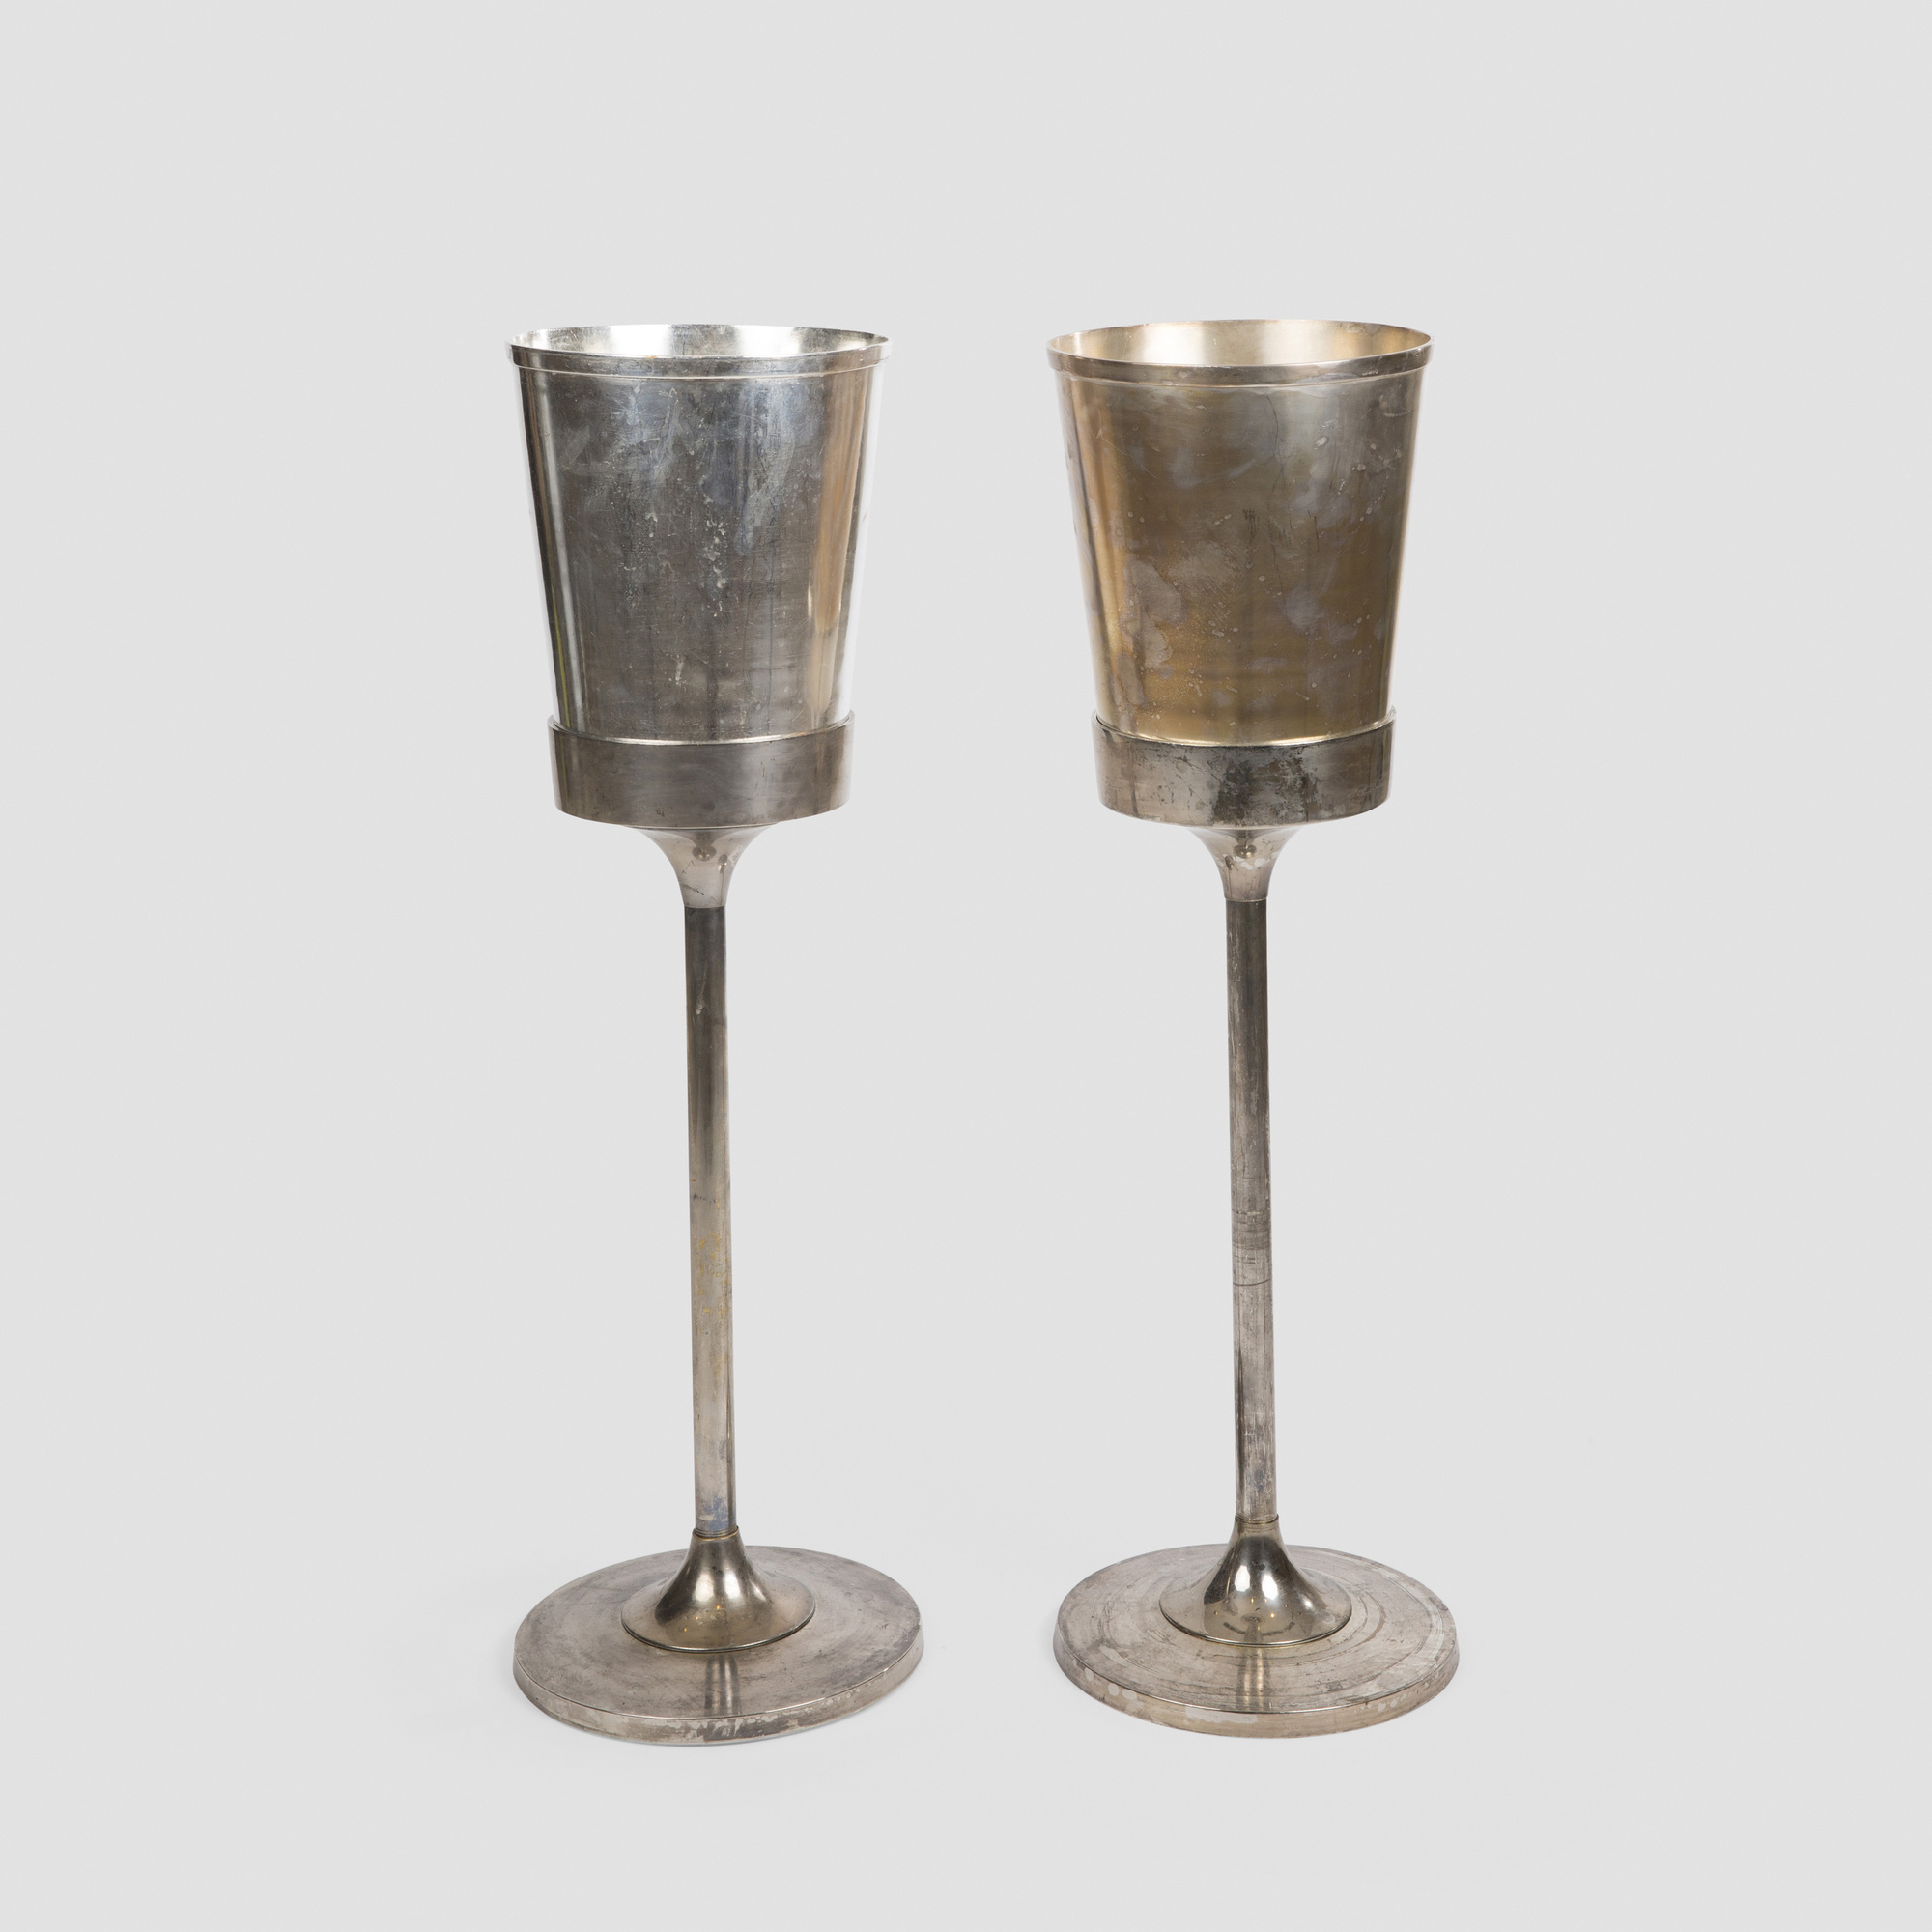 560:  / Wine coolers with stands from The Four Seasons, pair (1 of 1)